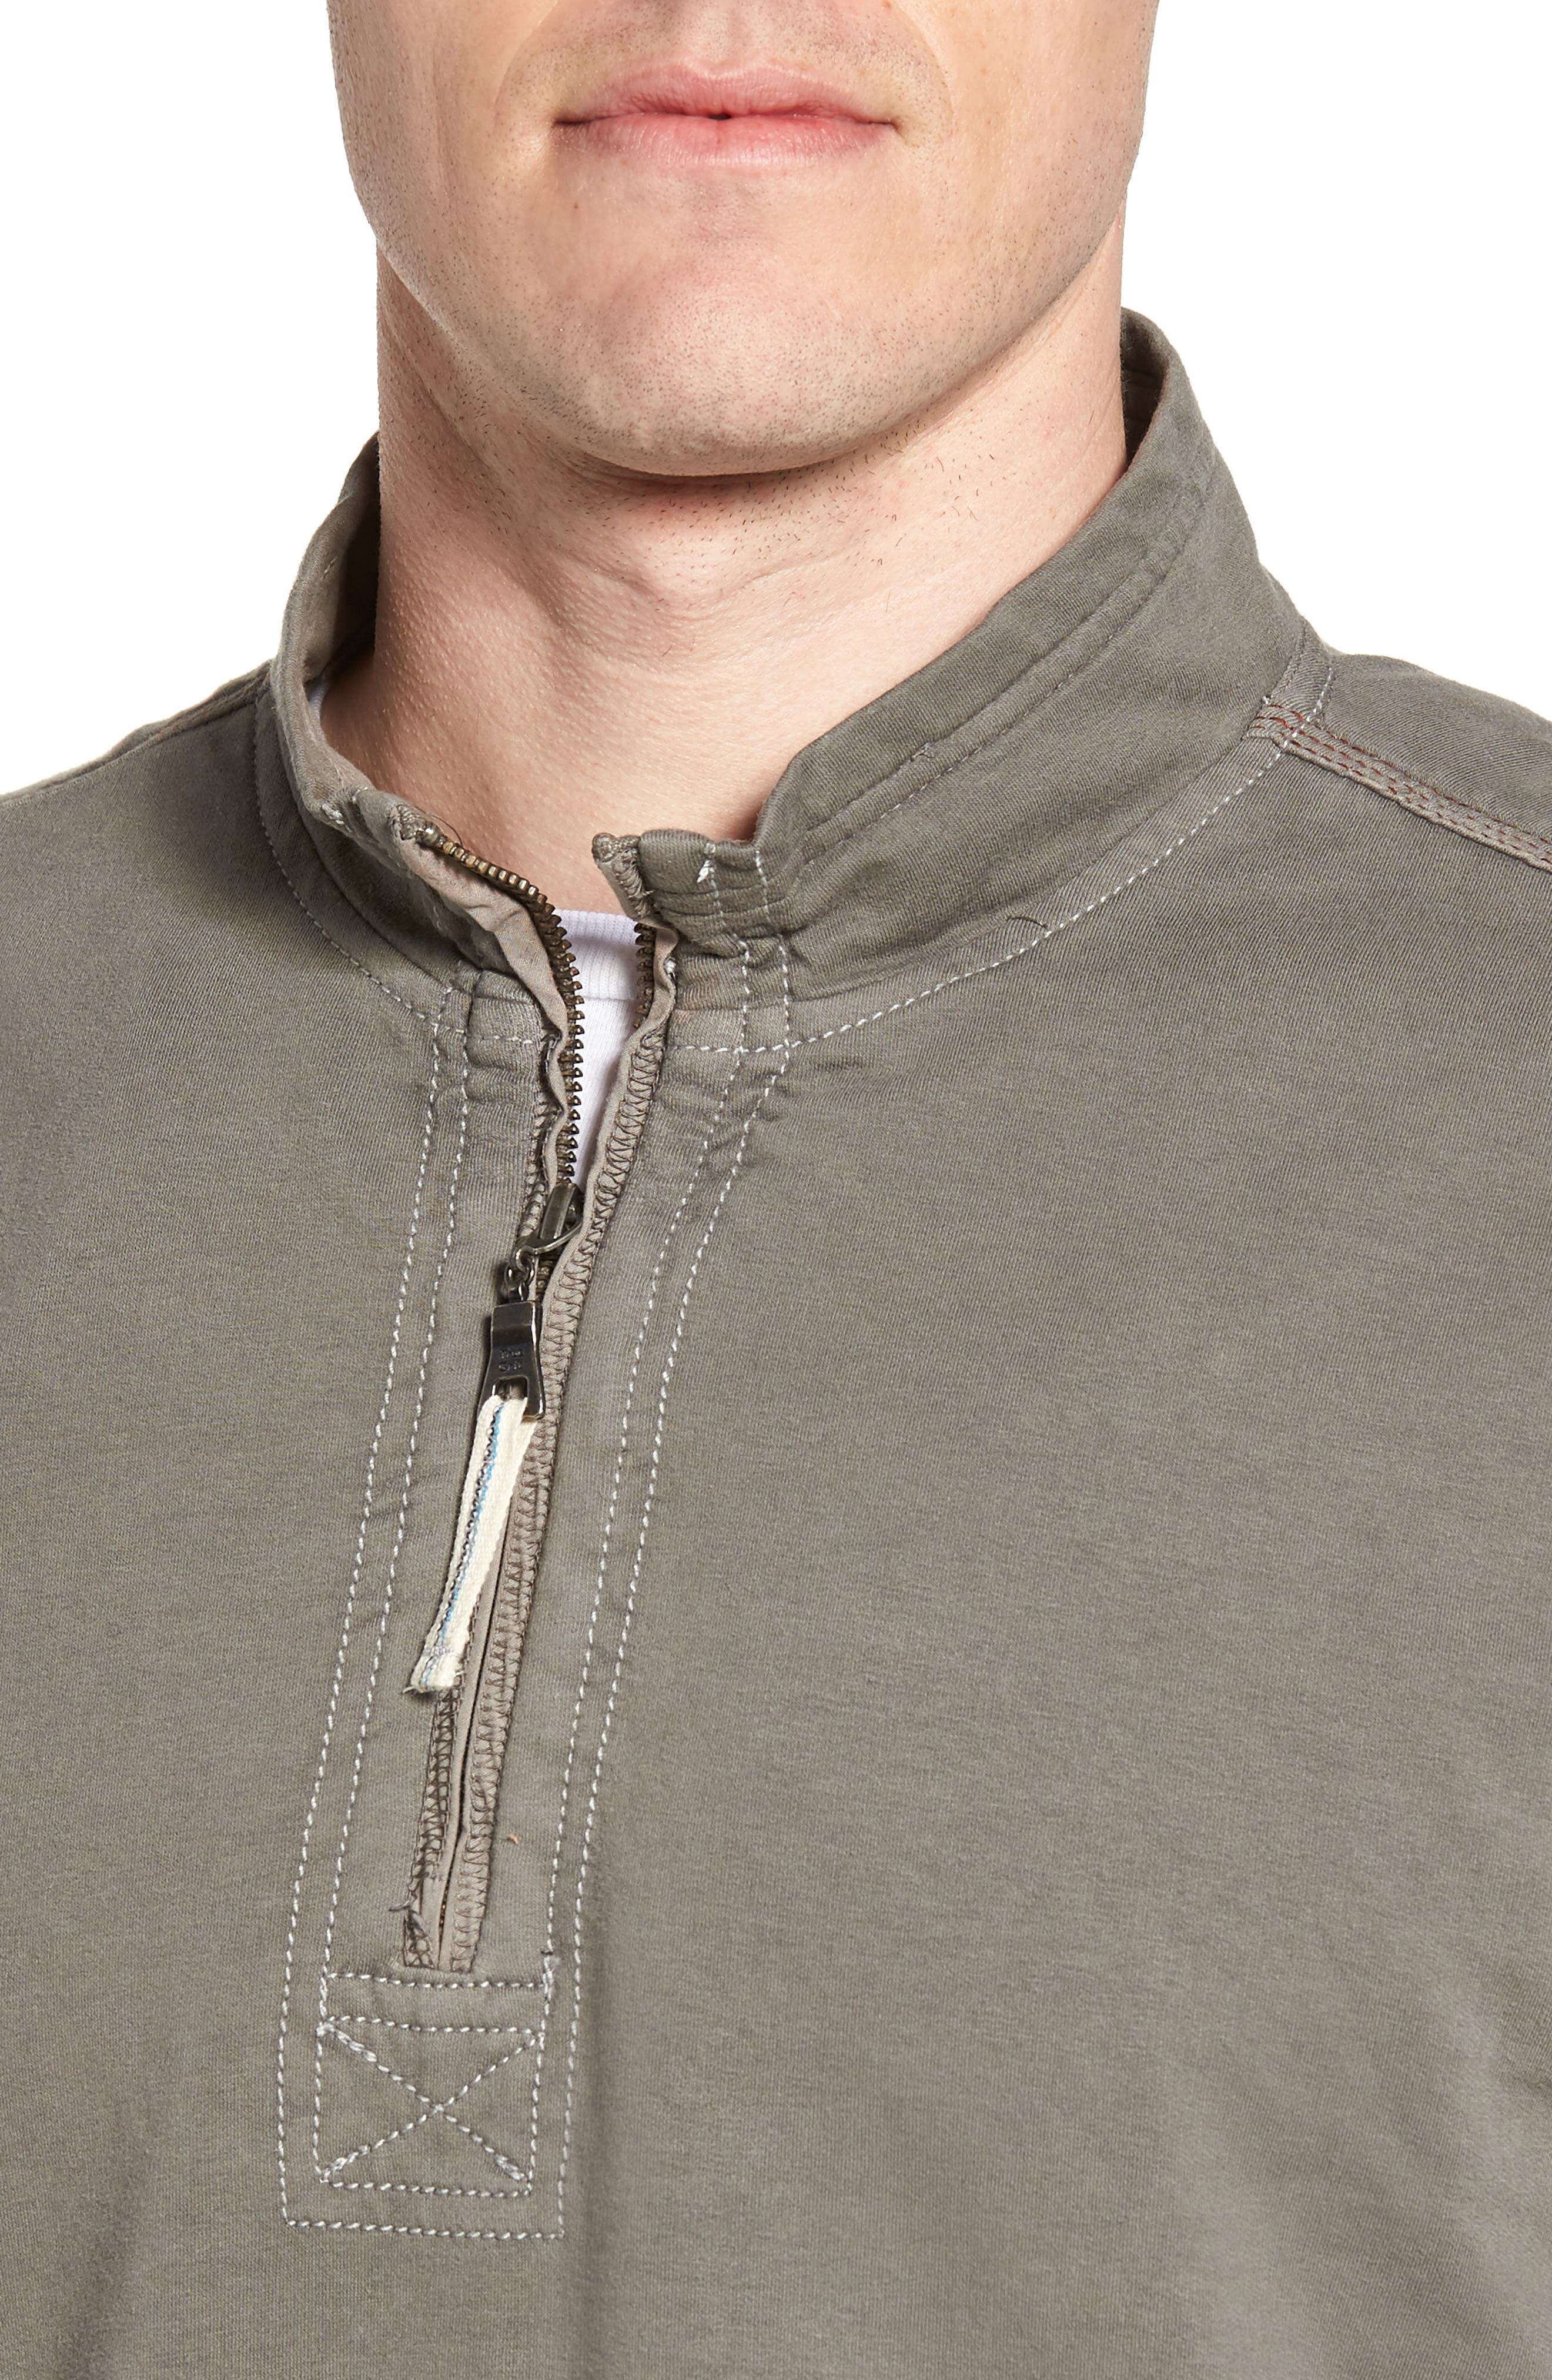 Quarter Zip Fleece Pullover,                             Alternate thumbnail 4, color,                             020